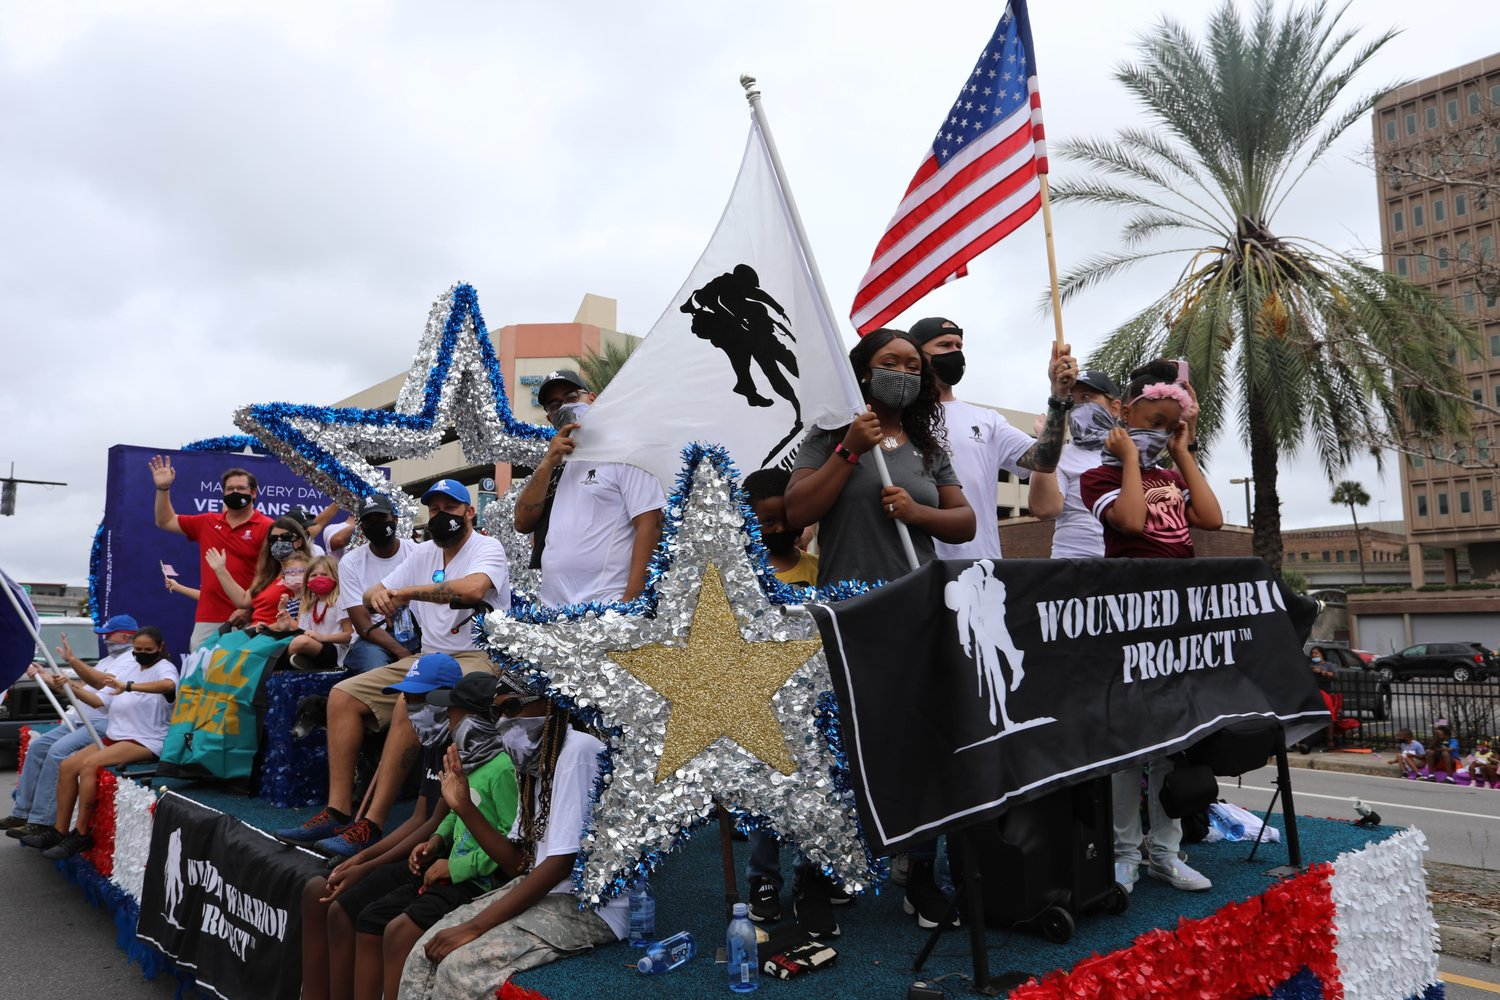 Wounded Warriors Project had a float in this year's Veterans Day parade in Jacksonville. U.S. Air Force veteran Shameka Alejandro holds a flag bearing the organization's logo at the float's front.